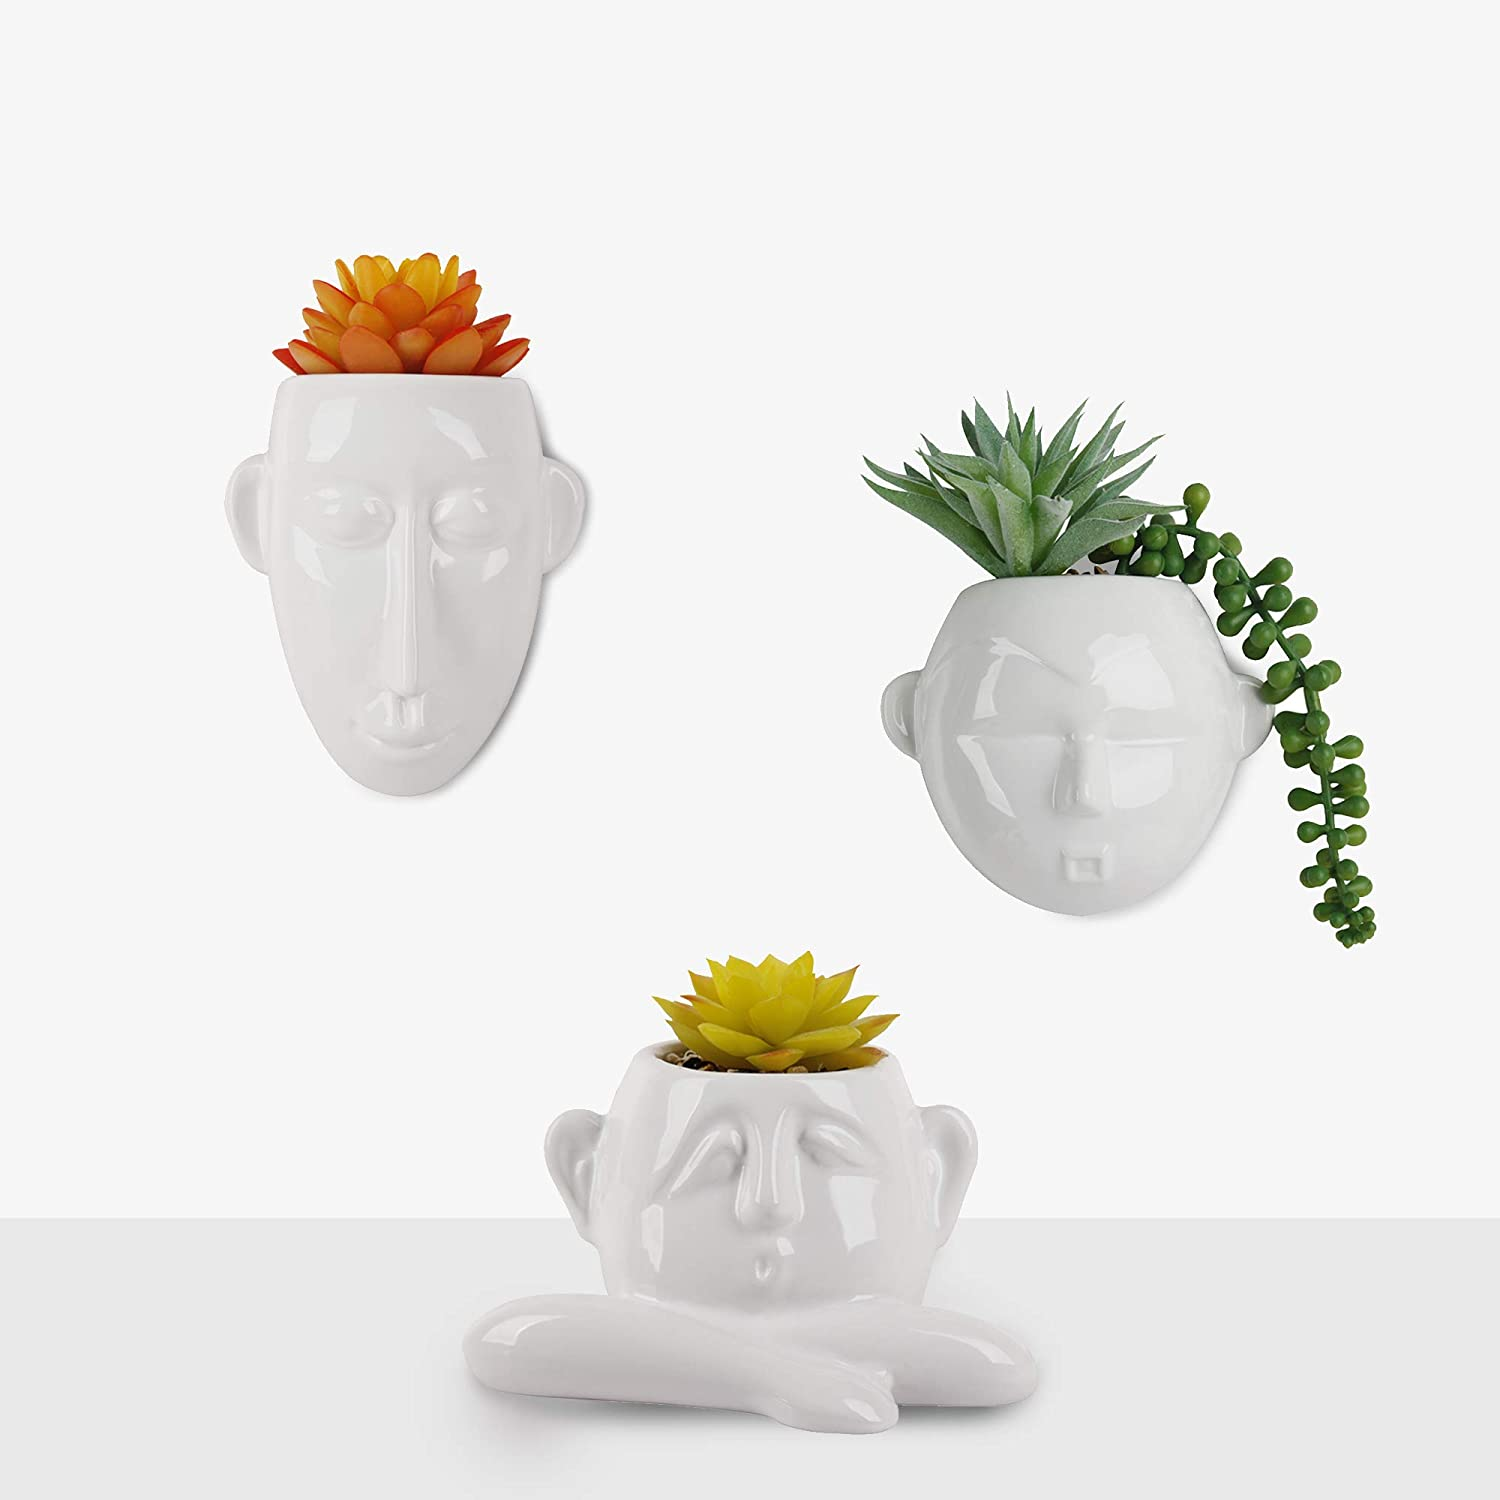 Set of 3 Artificial New sales Plants in Pot Ceramic Mounted White Ar Deluxe Wall